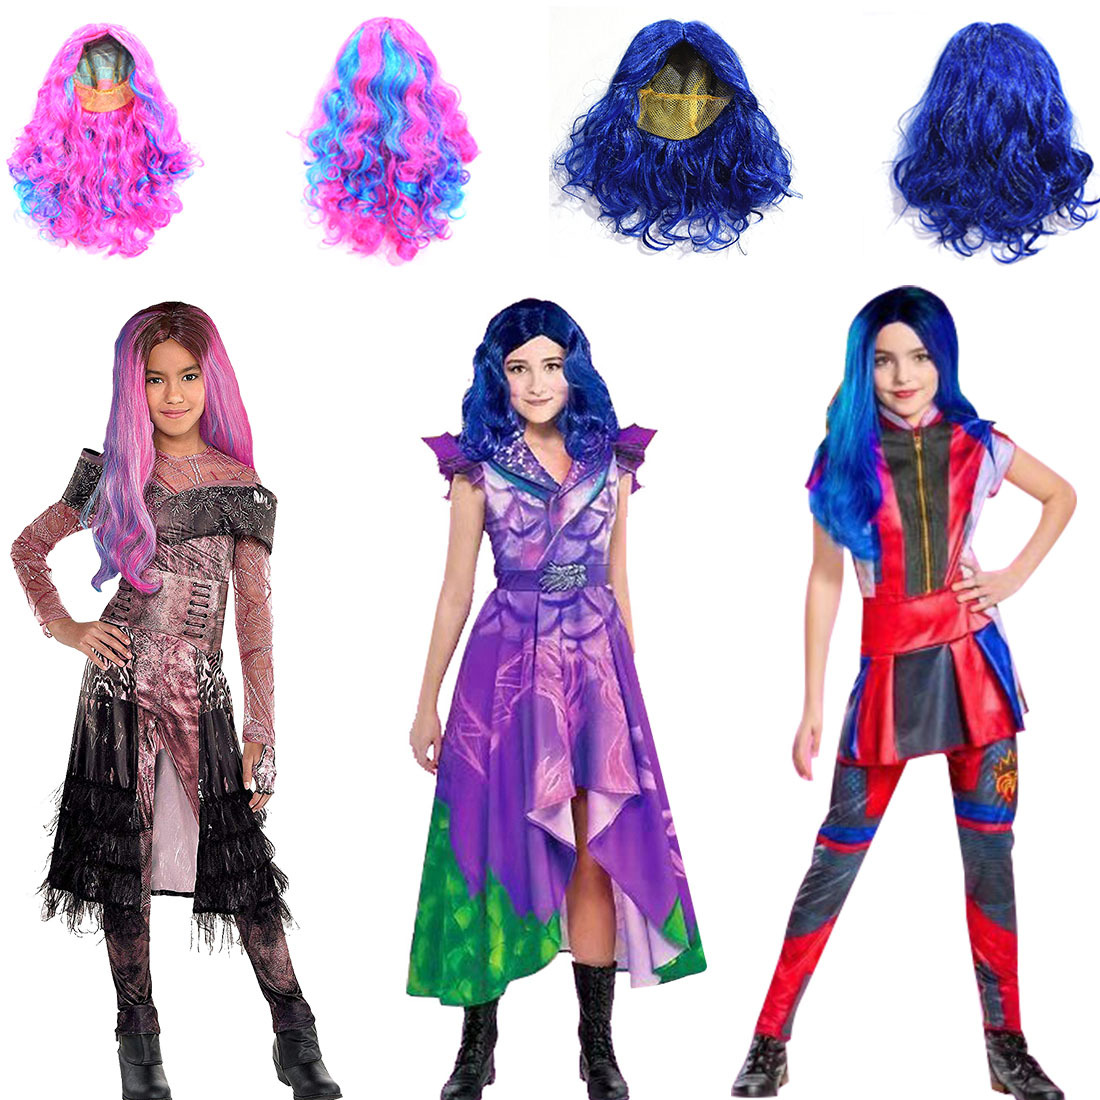 New Girls Queen Of Mean Descendants 3 Mal/Evie Bertha Maleficent Cosplay Audrey Costume Girls Halloween Party Clothing Jumpsuits